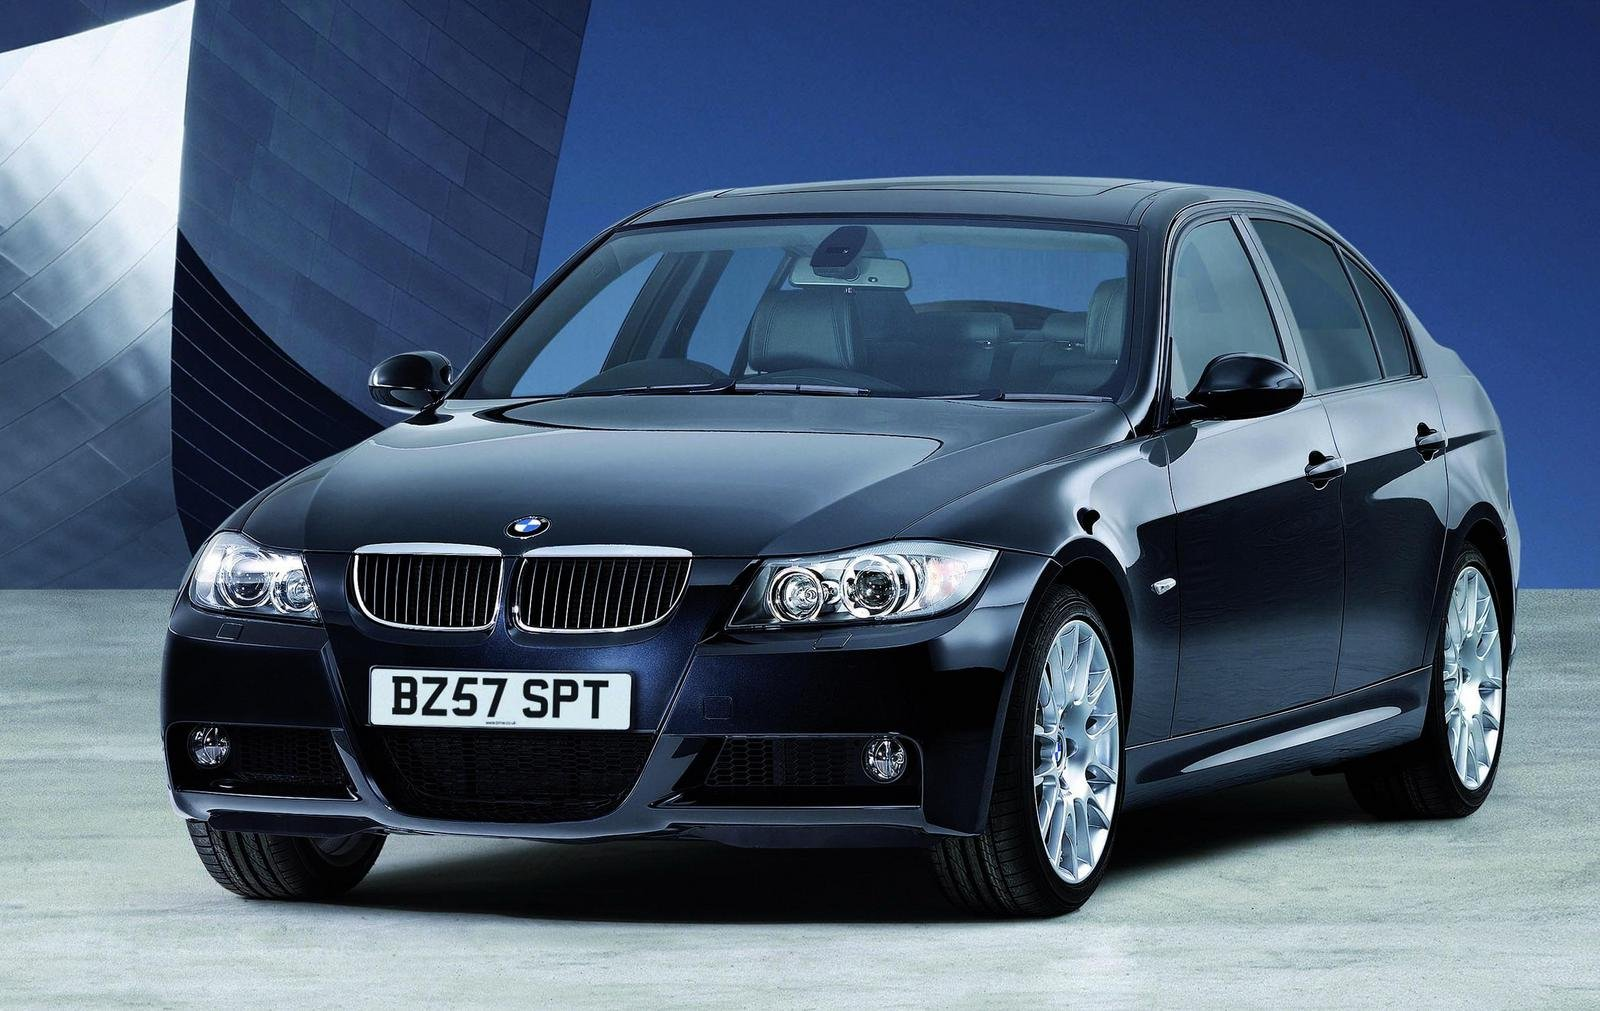 2008 bmw 3 series edition m sport review top speed. Black Bedroom Furniture Sets. Home Design Ideas